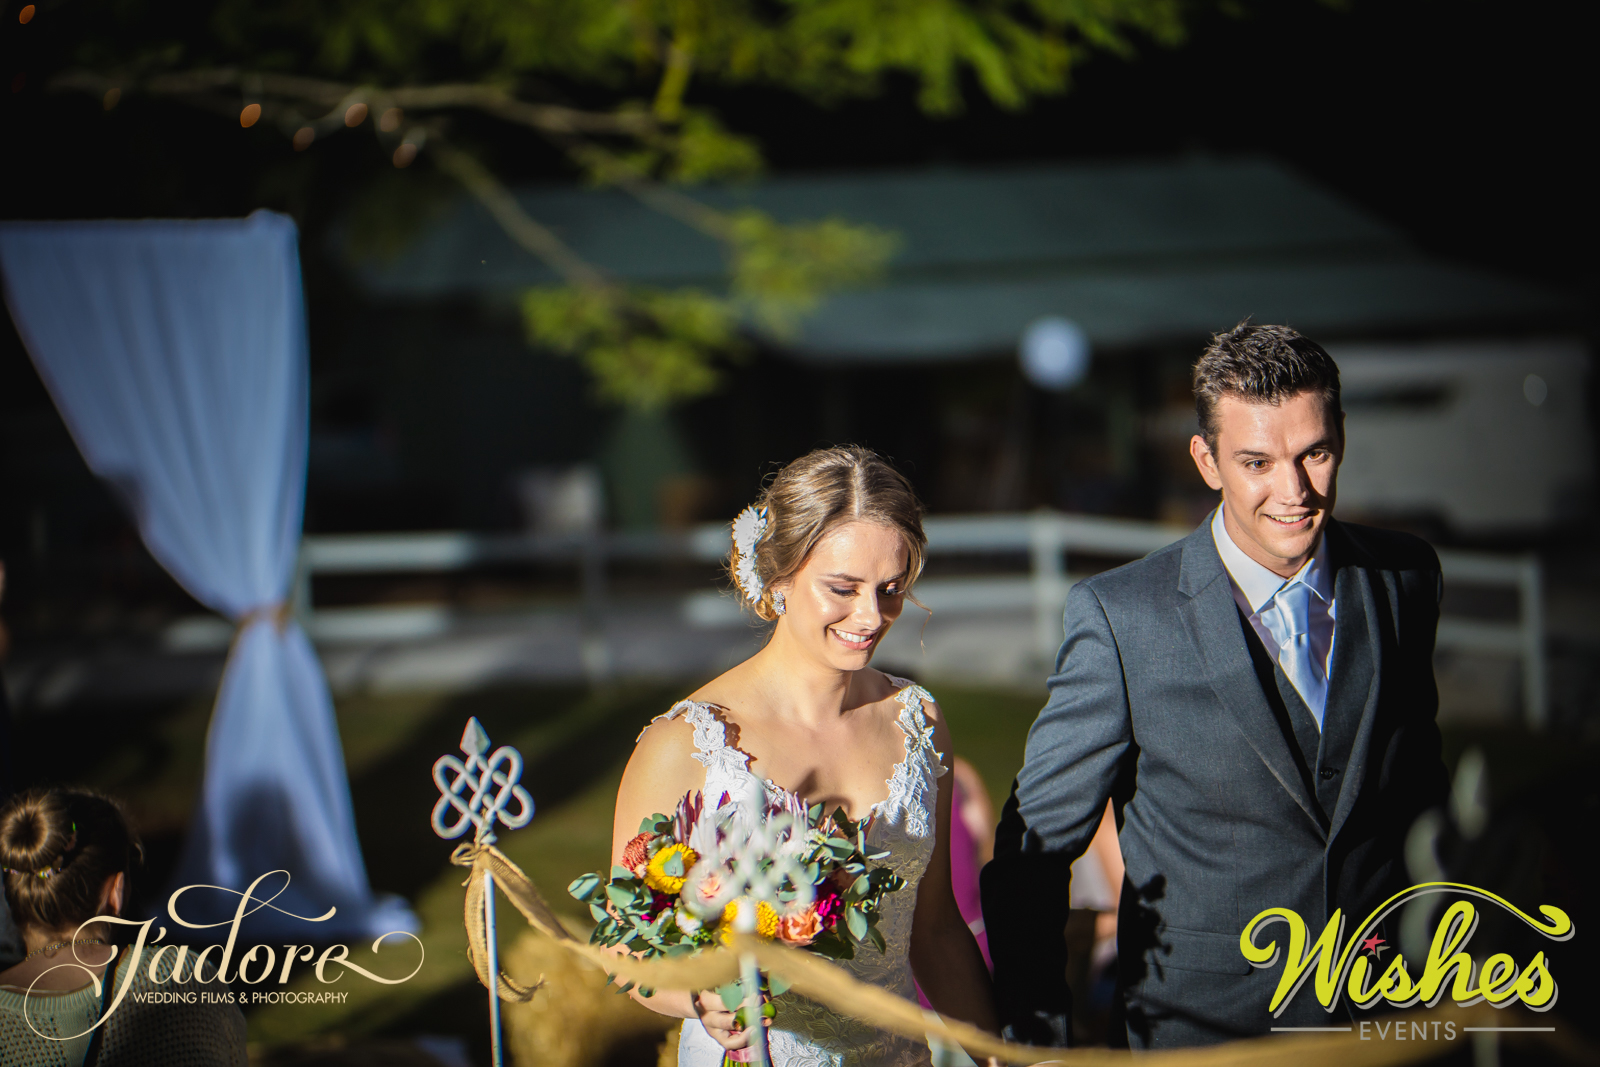 Paradise Country Ceremony Styled by Wishes Events and Photographed by J'adore Wedding Photo & Film